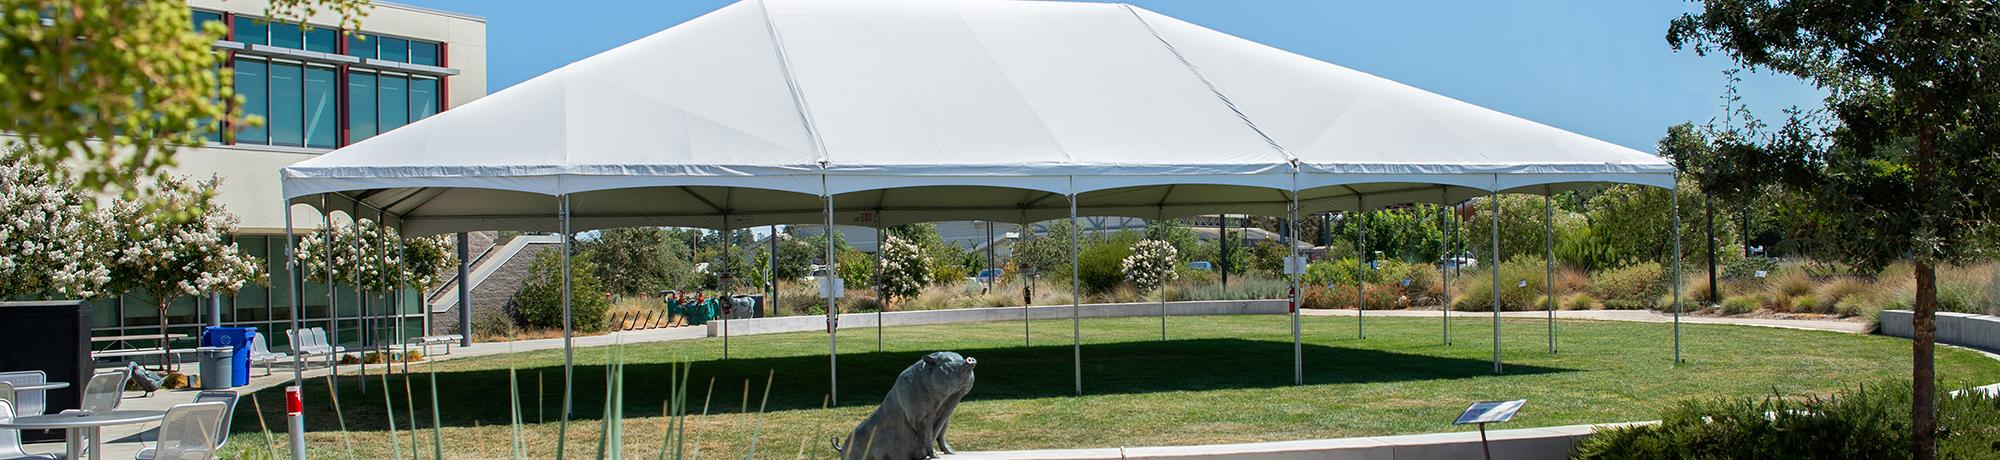 Image of tent on School of Veterinary Medicine campus at UC Davis.